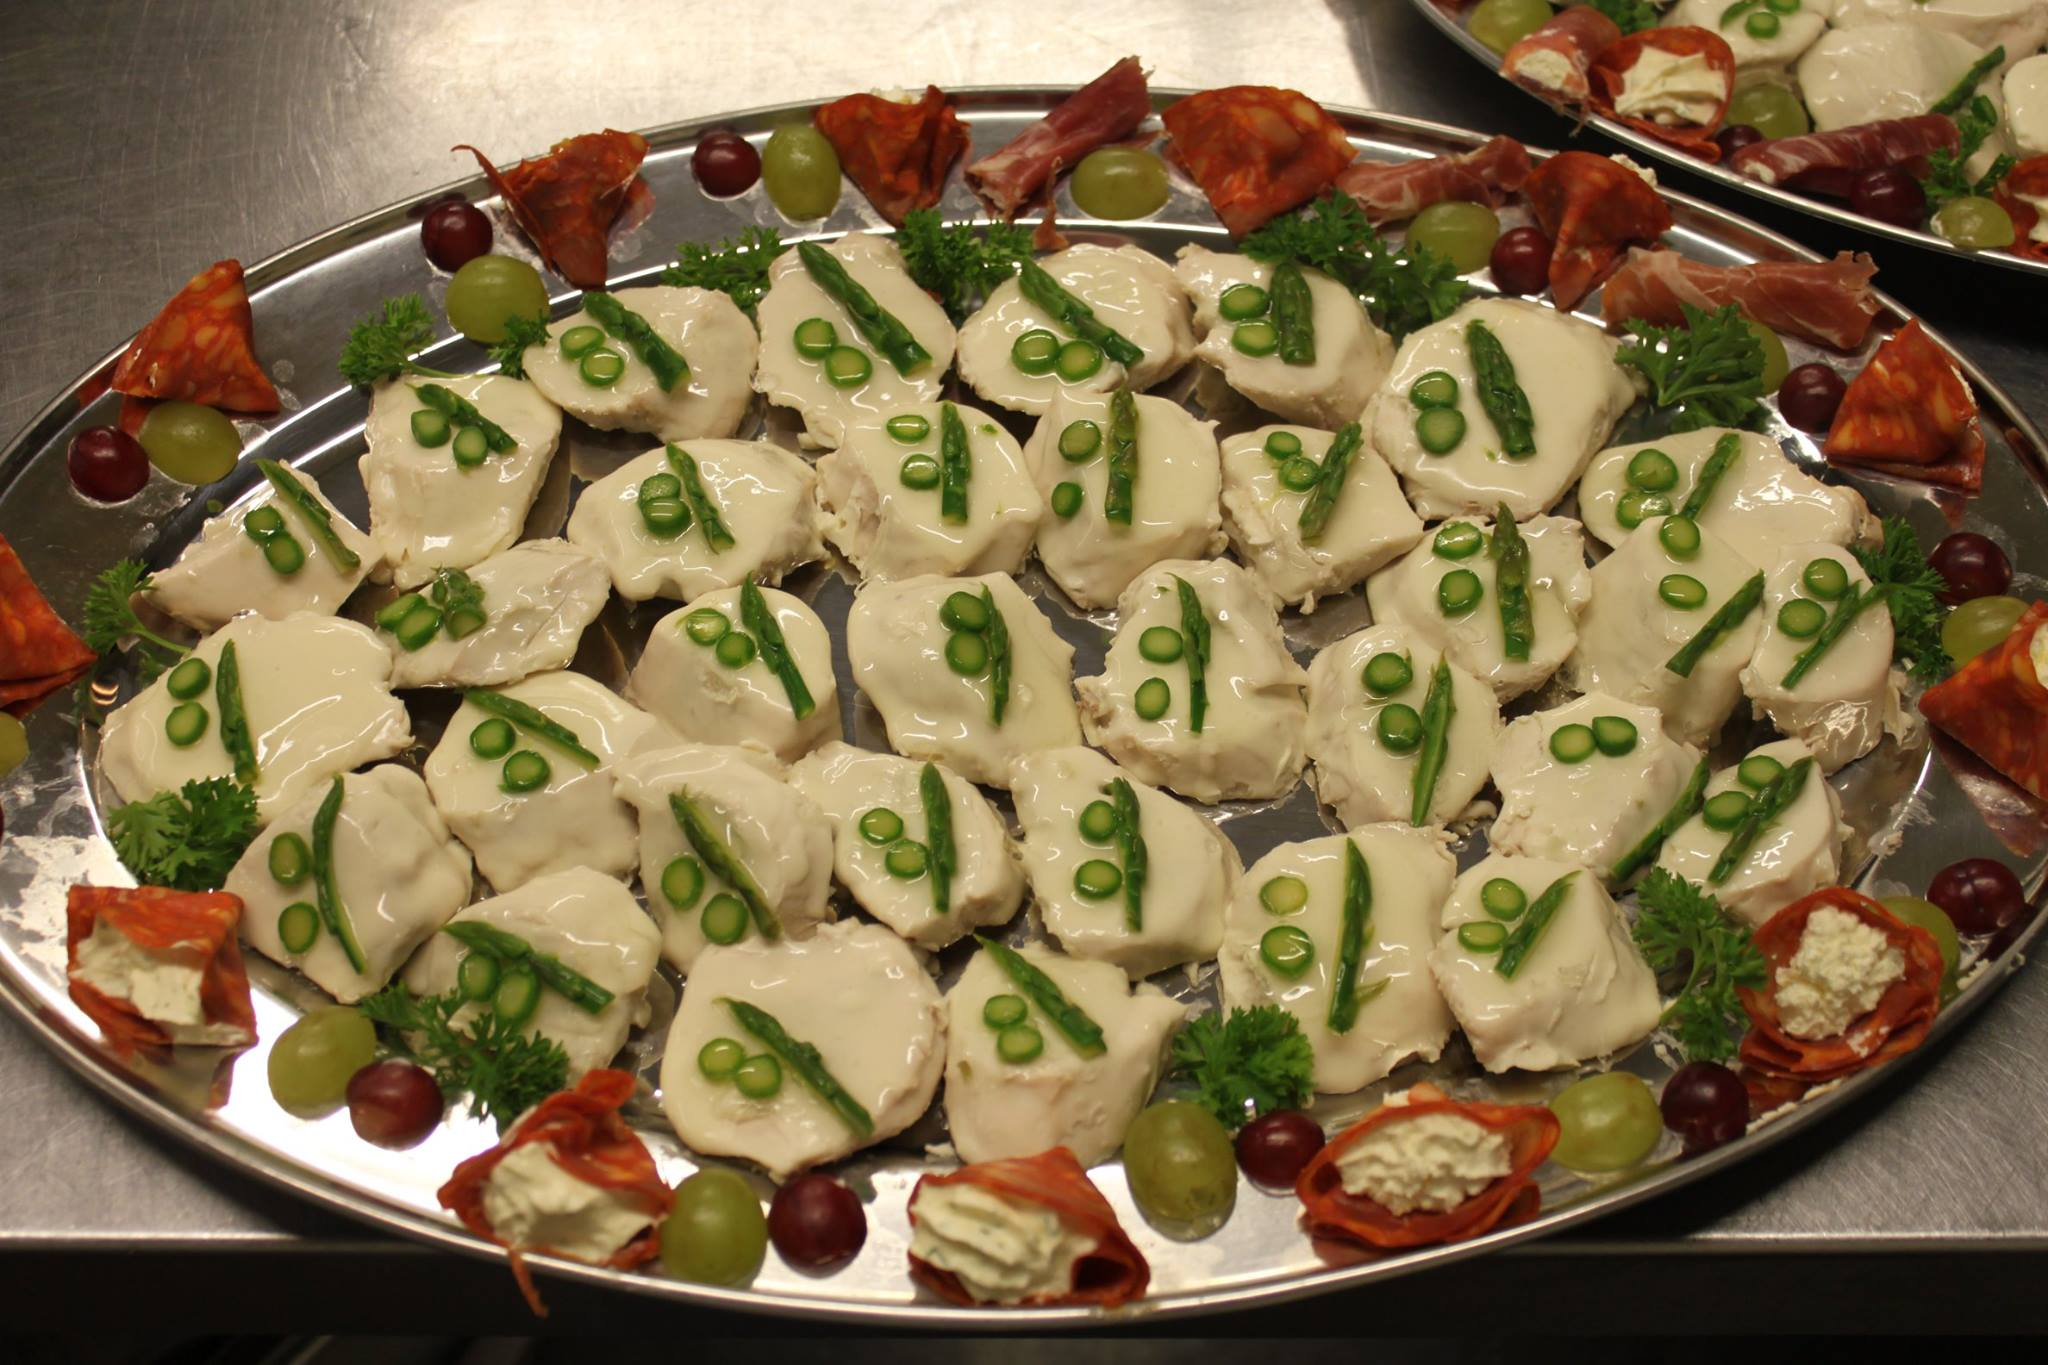 Chicken coated in a chaud froid sauce garnished with asparagus tips with chorizo filled with cream cheese with fine herbs ready for the next buffet.